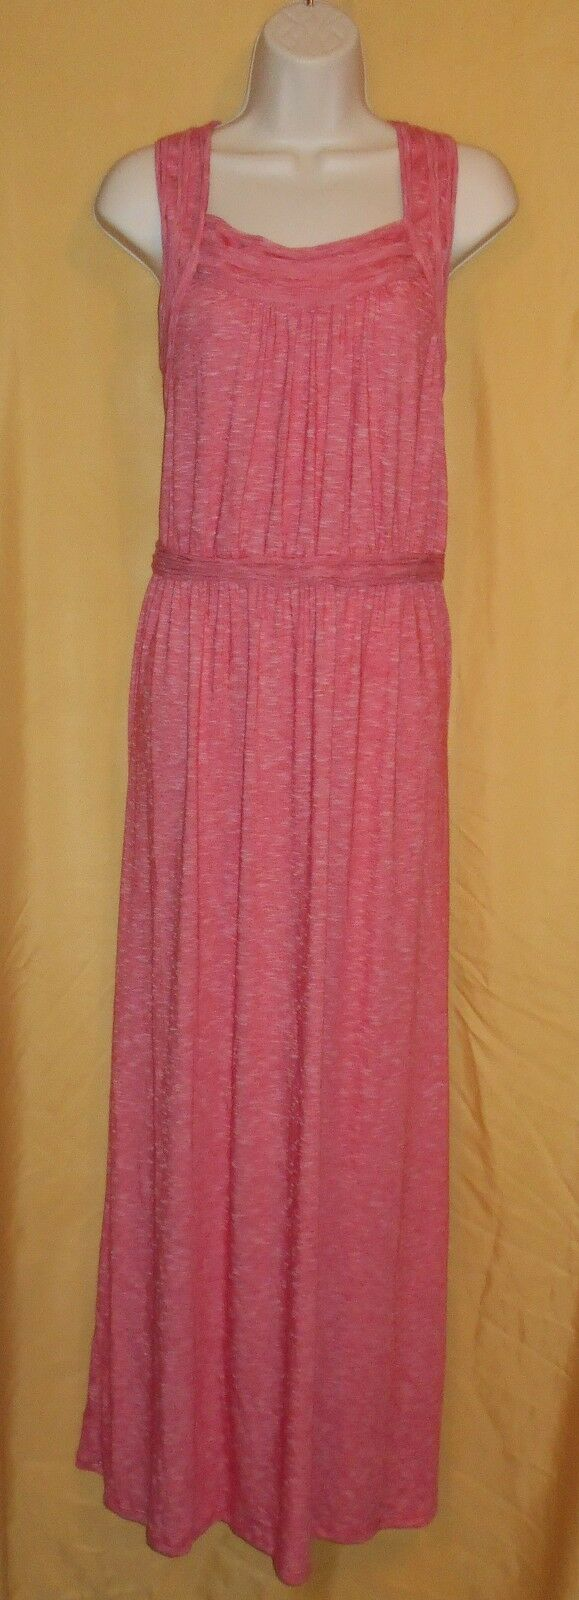 Max Edition women's red ivory striped maxi sundress stretch dress top M L  118